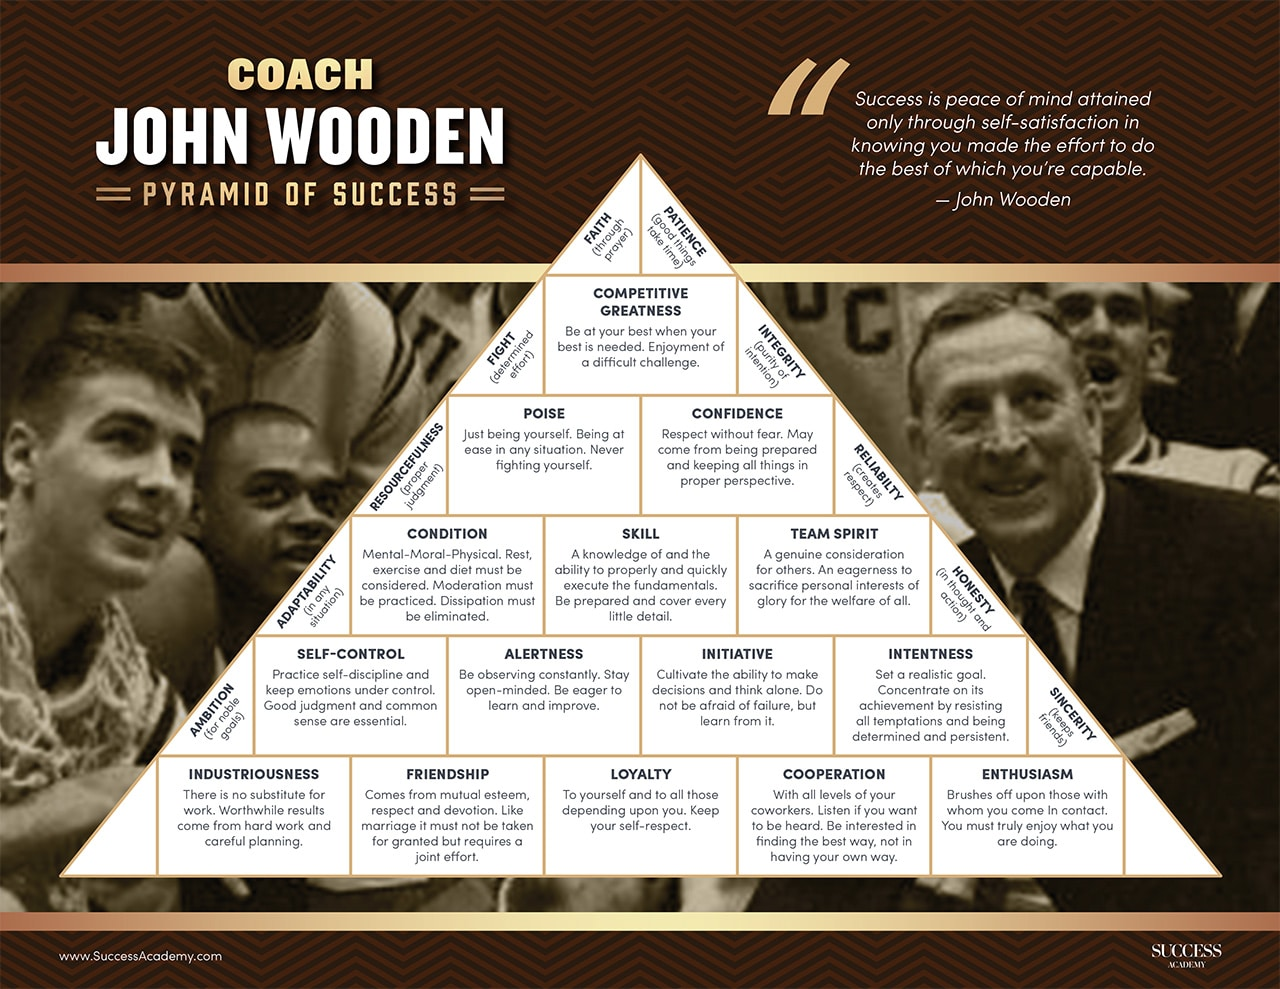 Pyramid Of Success By Coach John Wooden Digital Learning